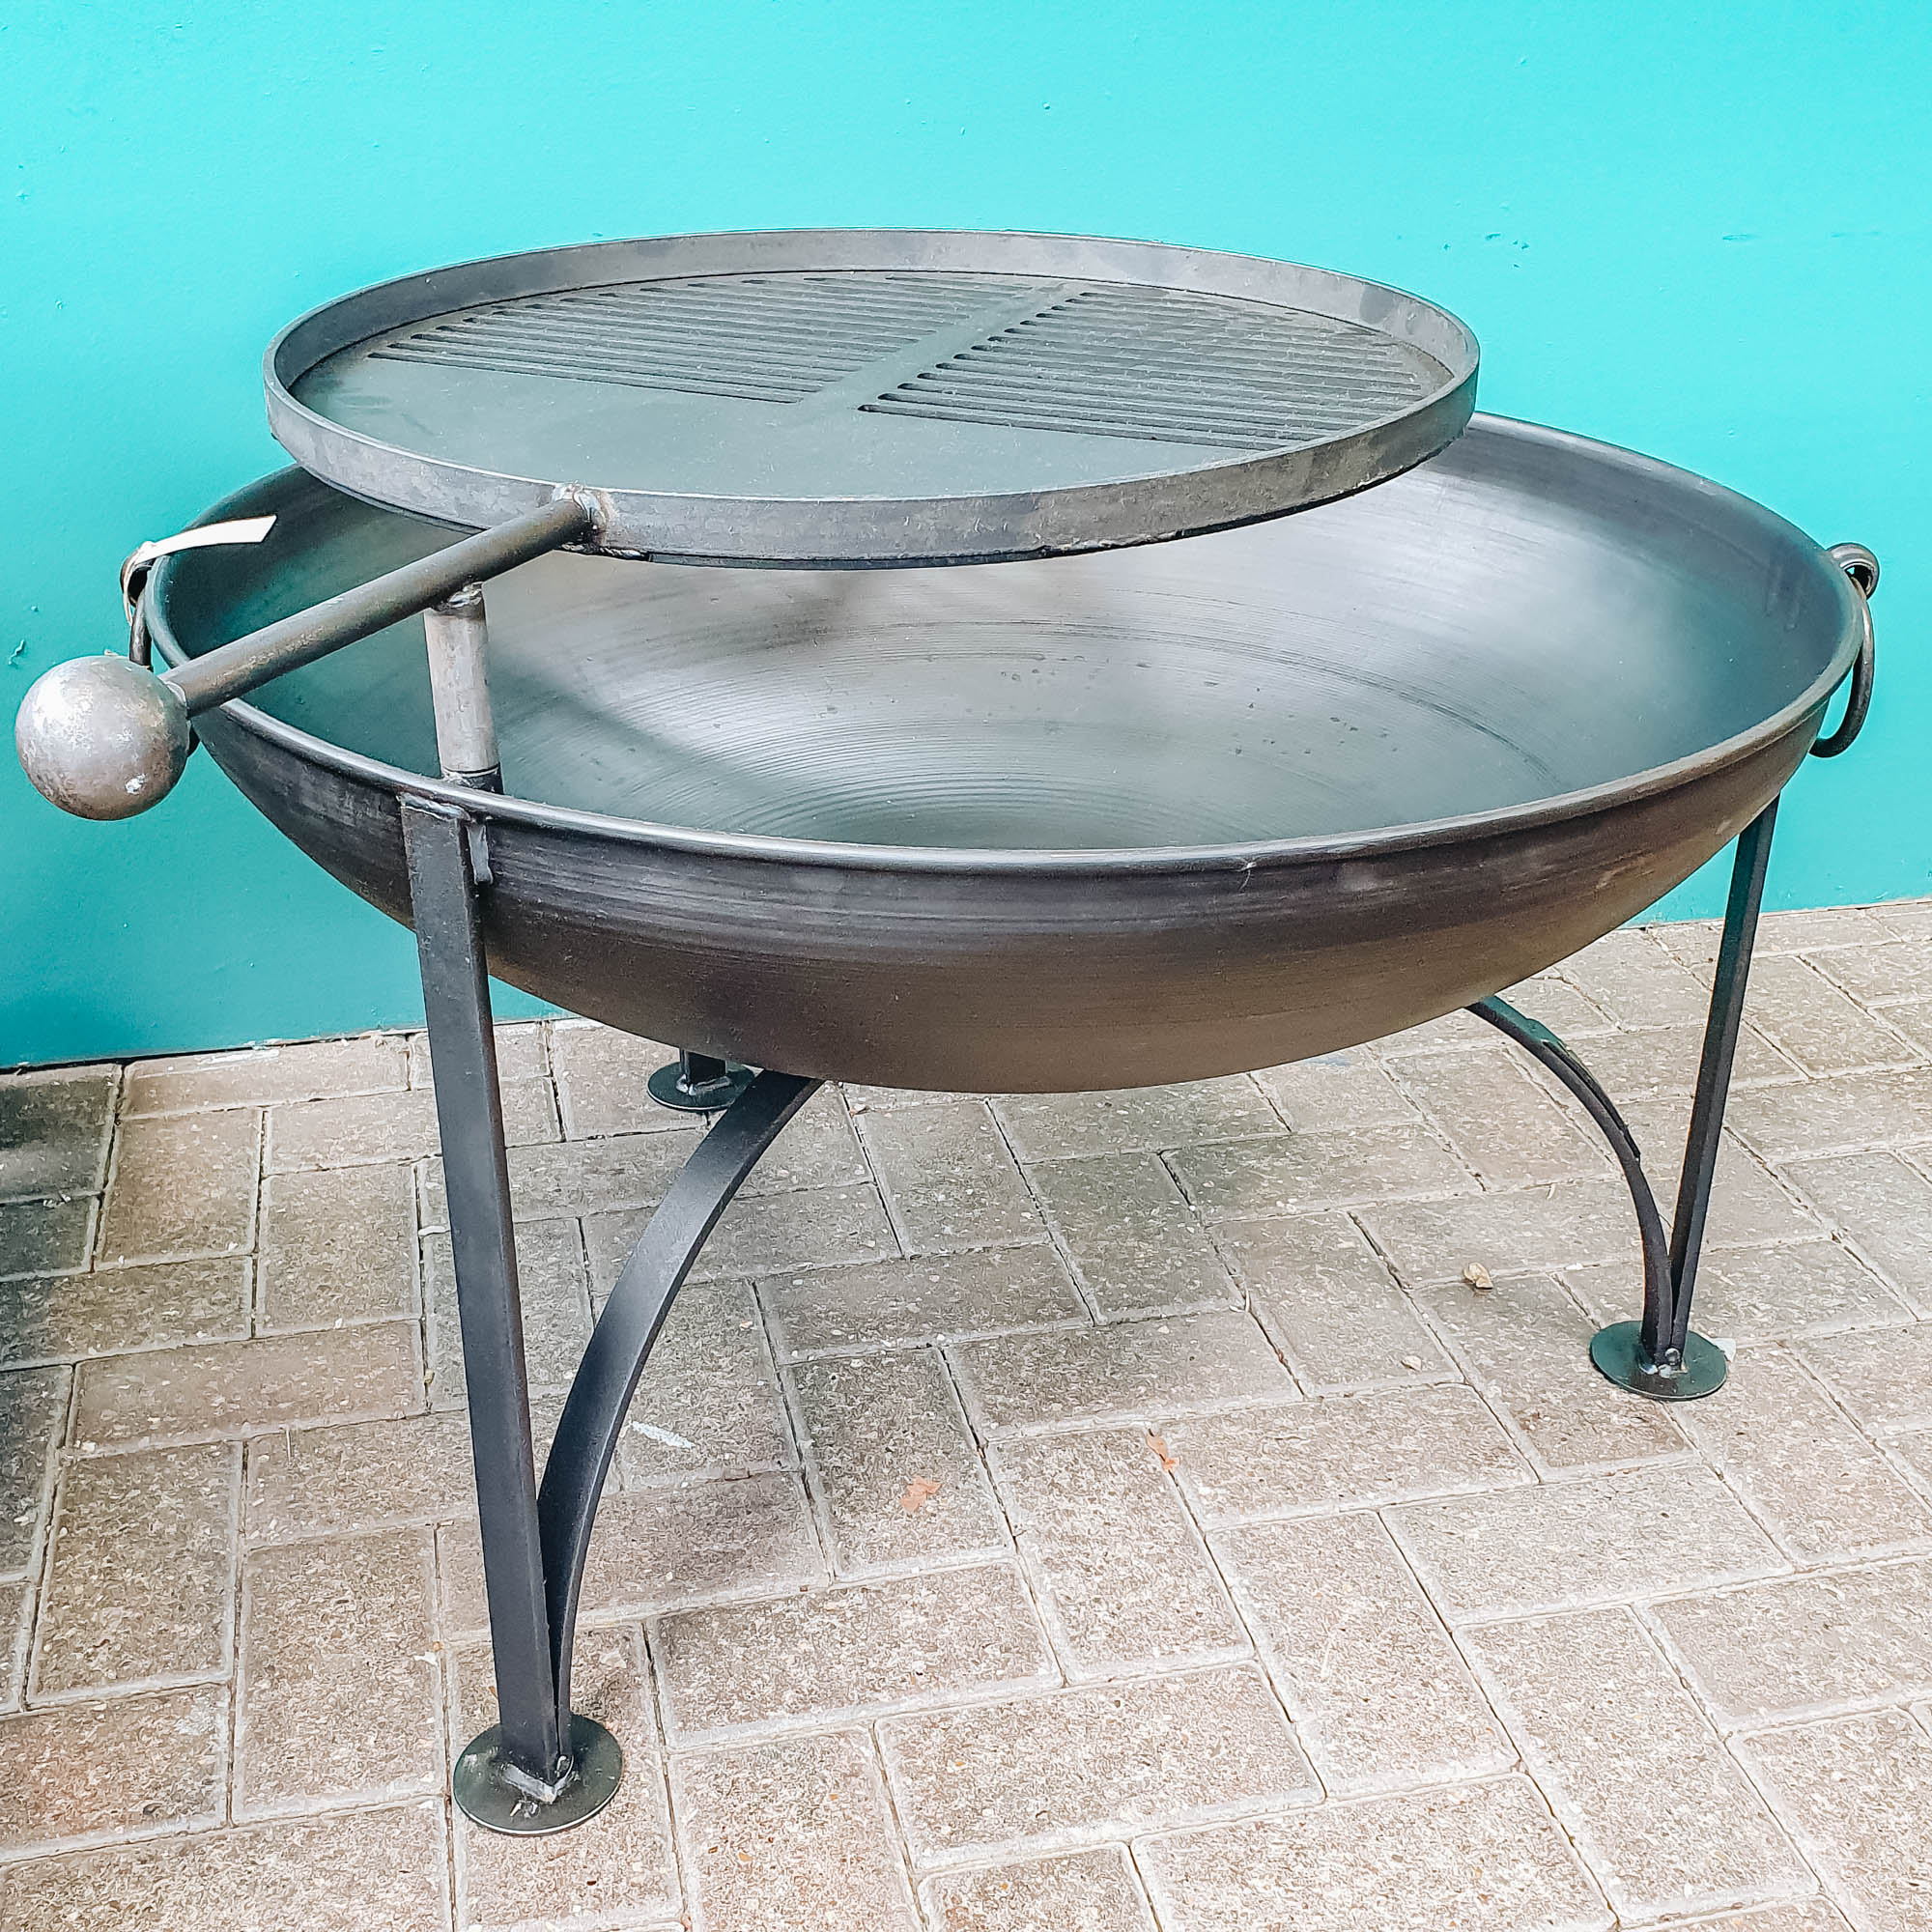 Buy Plain Jane Fire Pits with Swing Arm | Firepits & Kadais | Burford Garden Company